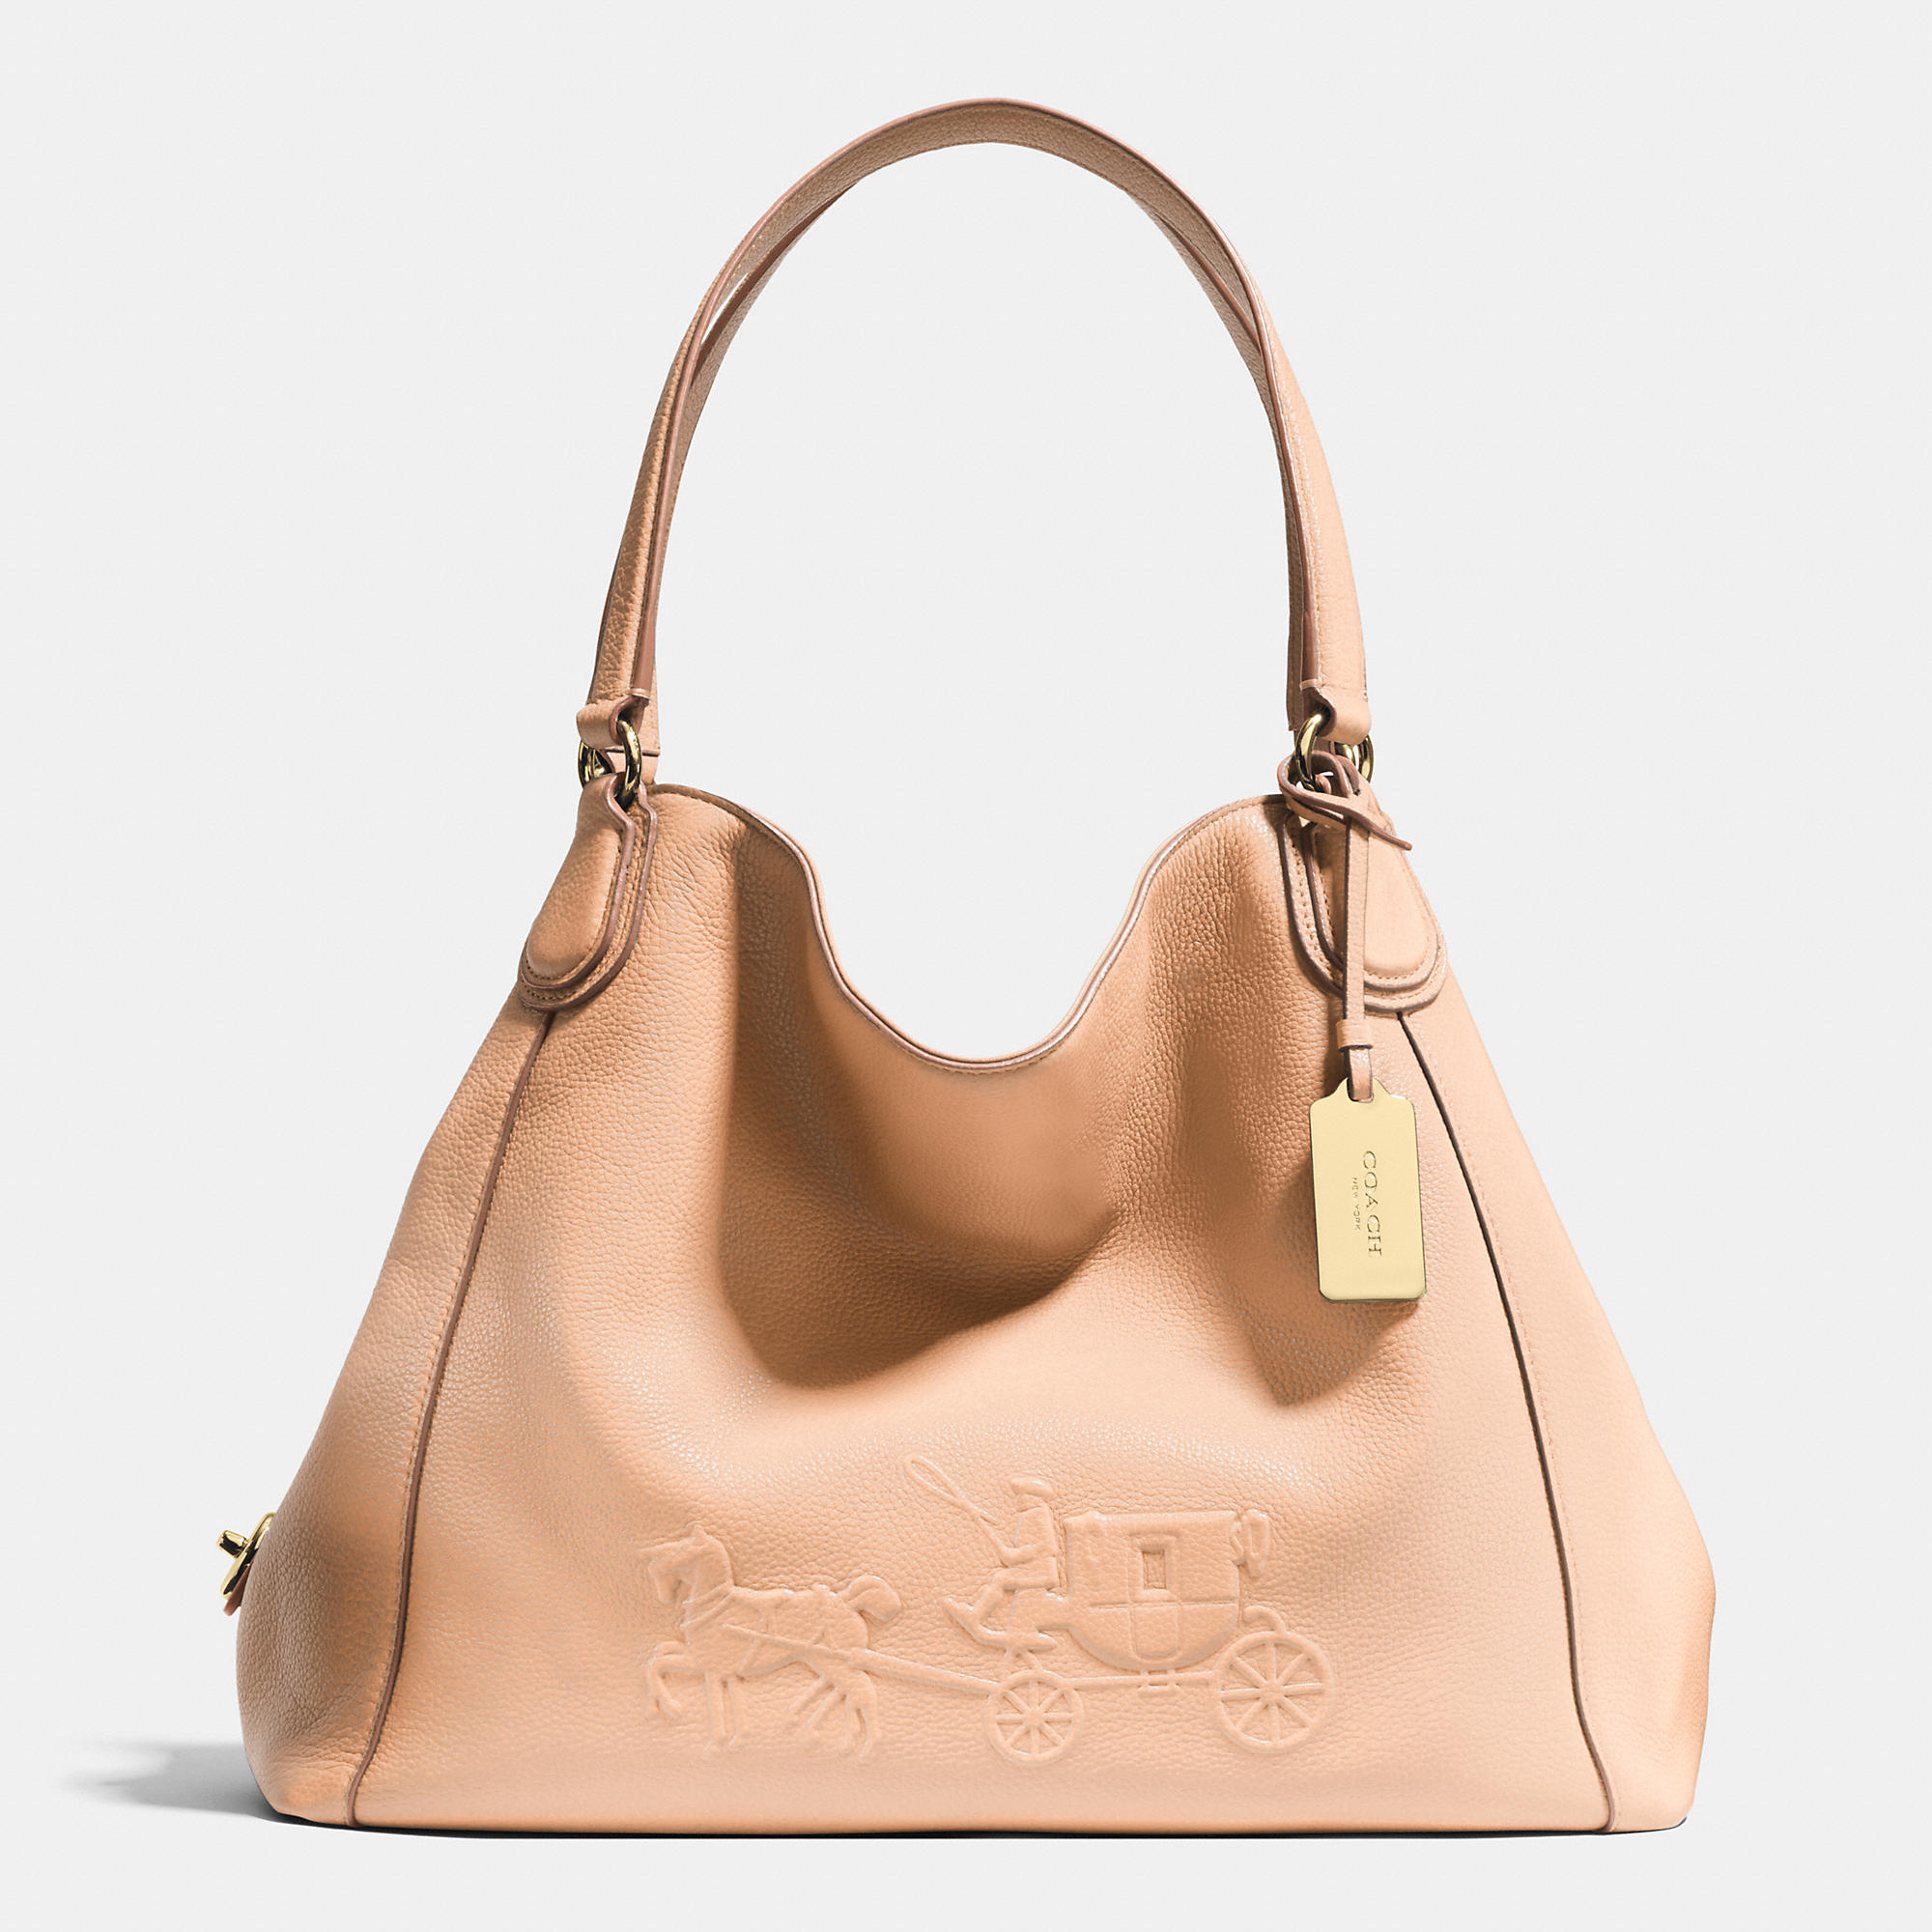 7ad26fed04 Lyst - COACH Embossed Horse And Carriage Edie Shoulder Bag In ...